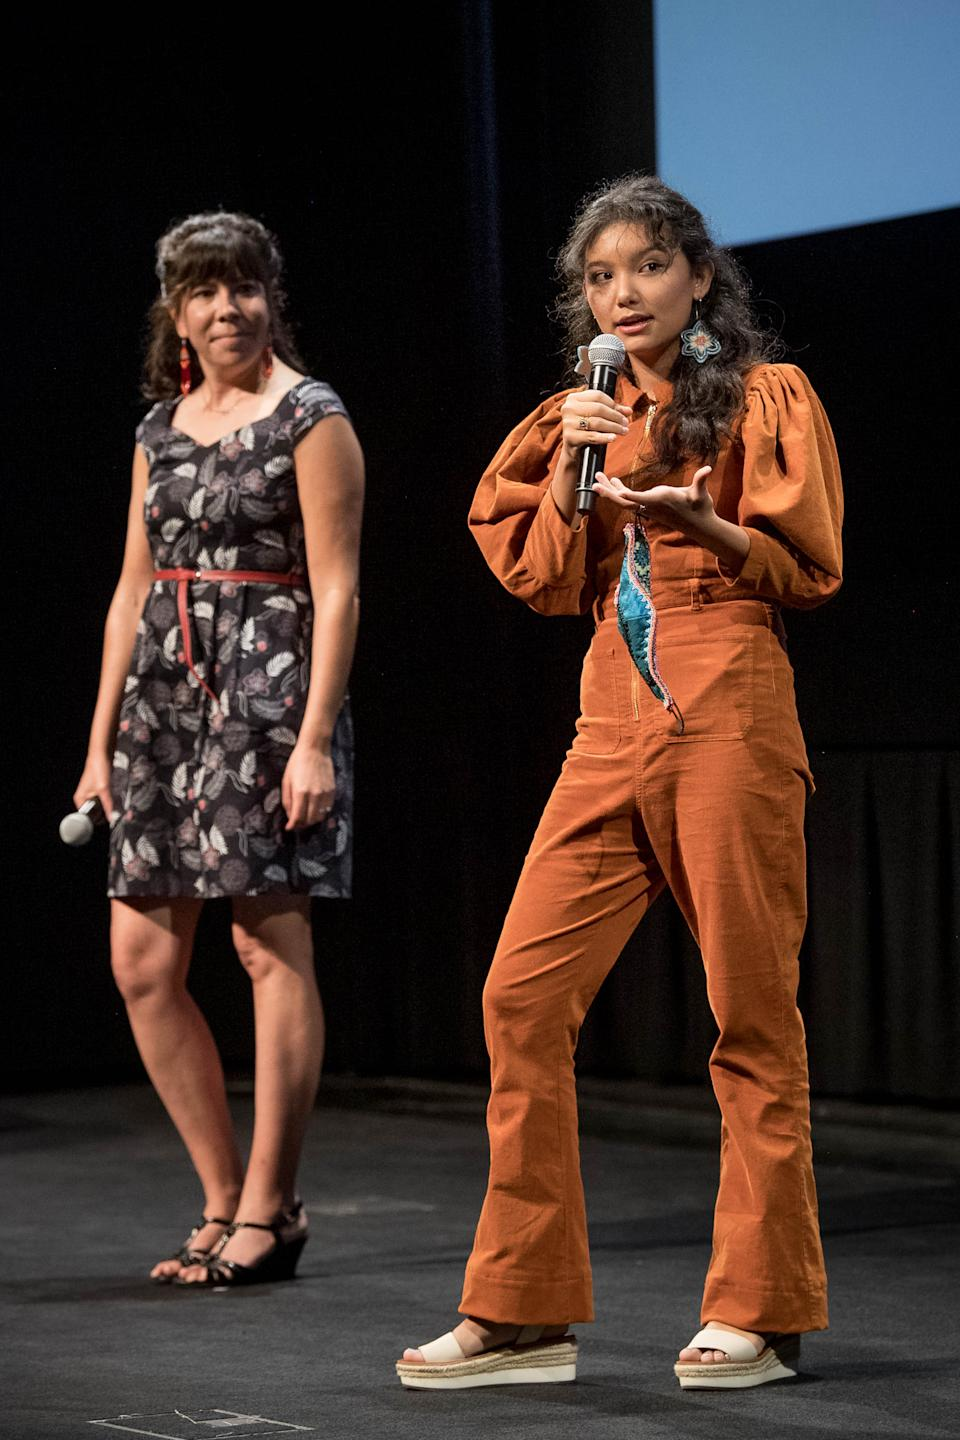 TORONTO, ONTARIO - SEPTEMBER 13: Tracey Deer and Kiawentiio speak onstage at the 2020 Toronto International Film Festival screening of 'Beans' at TIFF Bell Lightbox on September 13, 2020 in Toronto, Ontario. (Photo by Emma McIntyre/Getty Images)